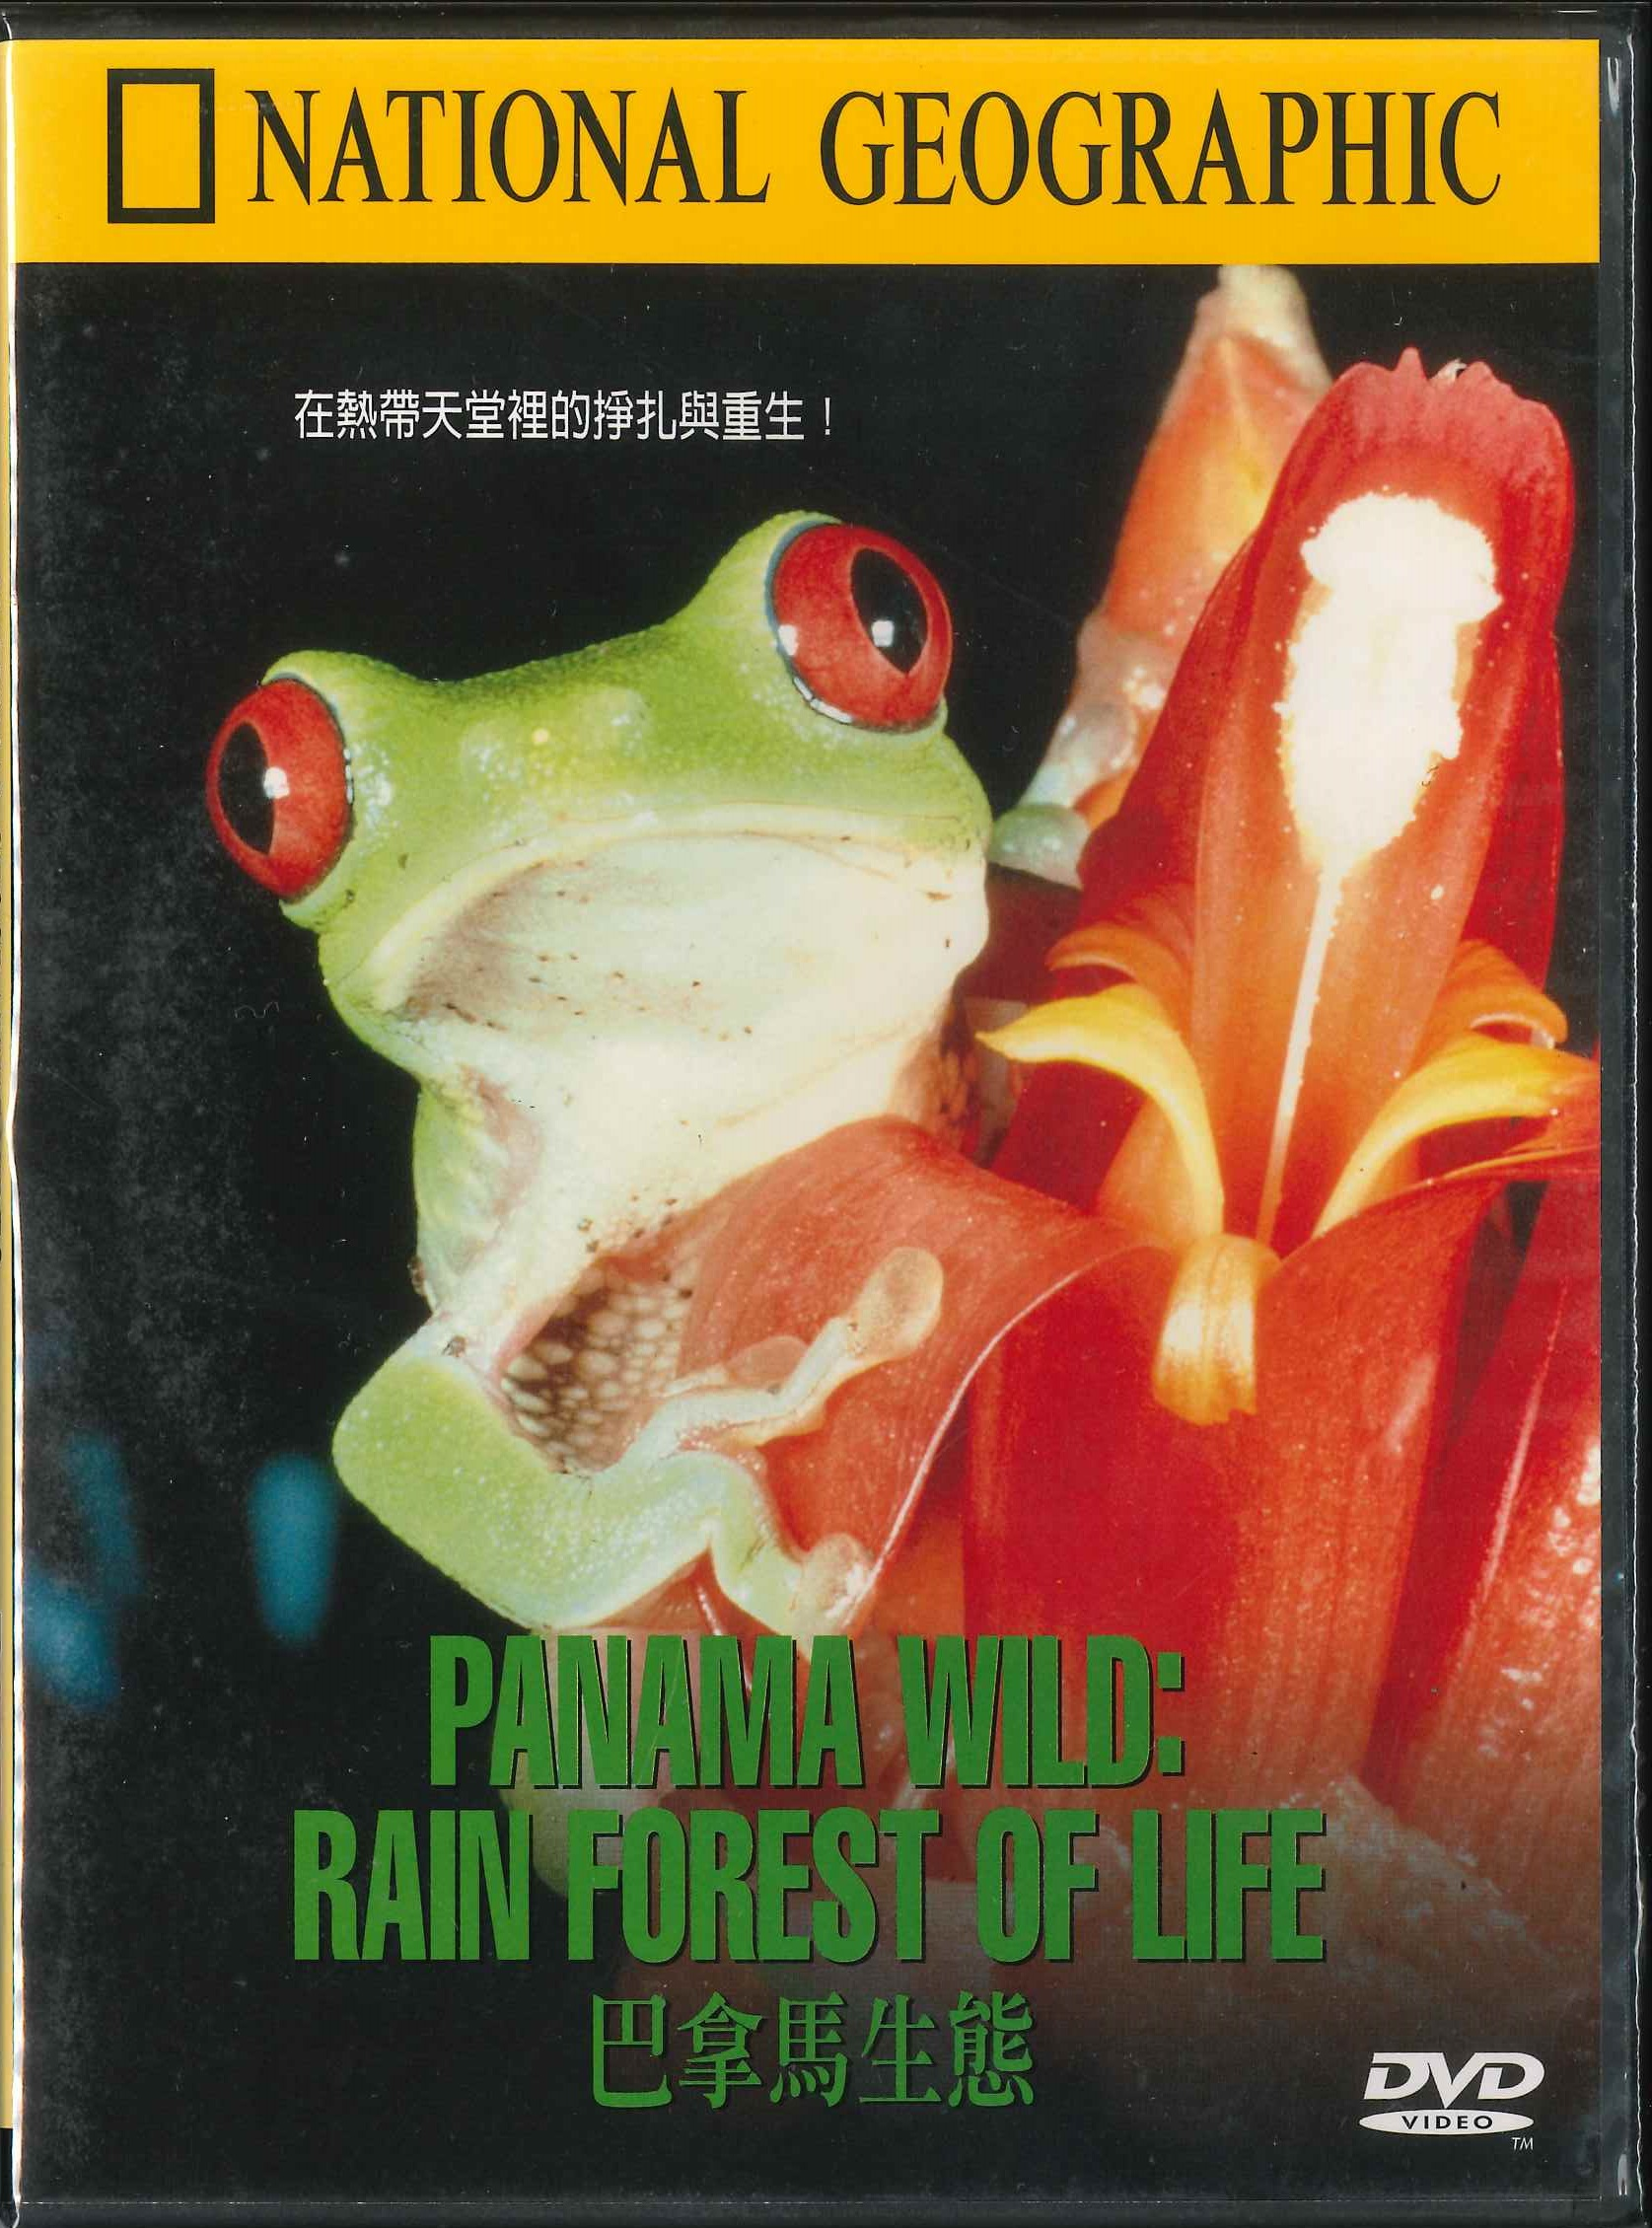 巴拿馬生態 [錄影資料]=Panama wild: rain forest of life